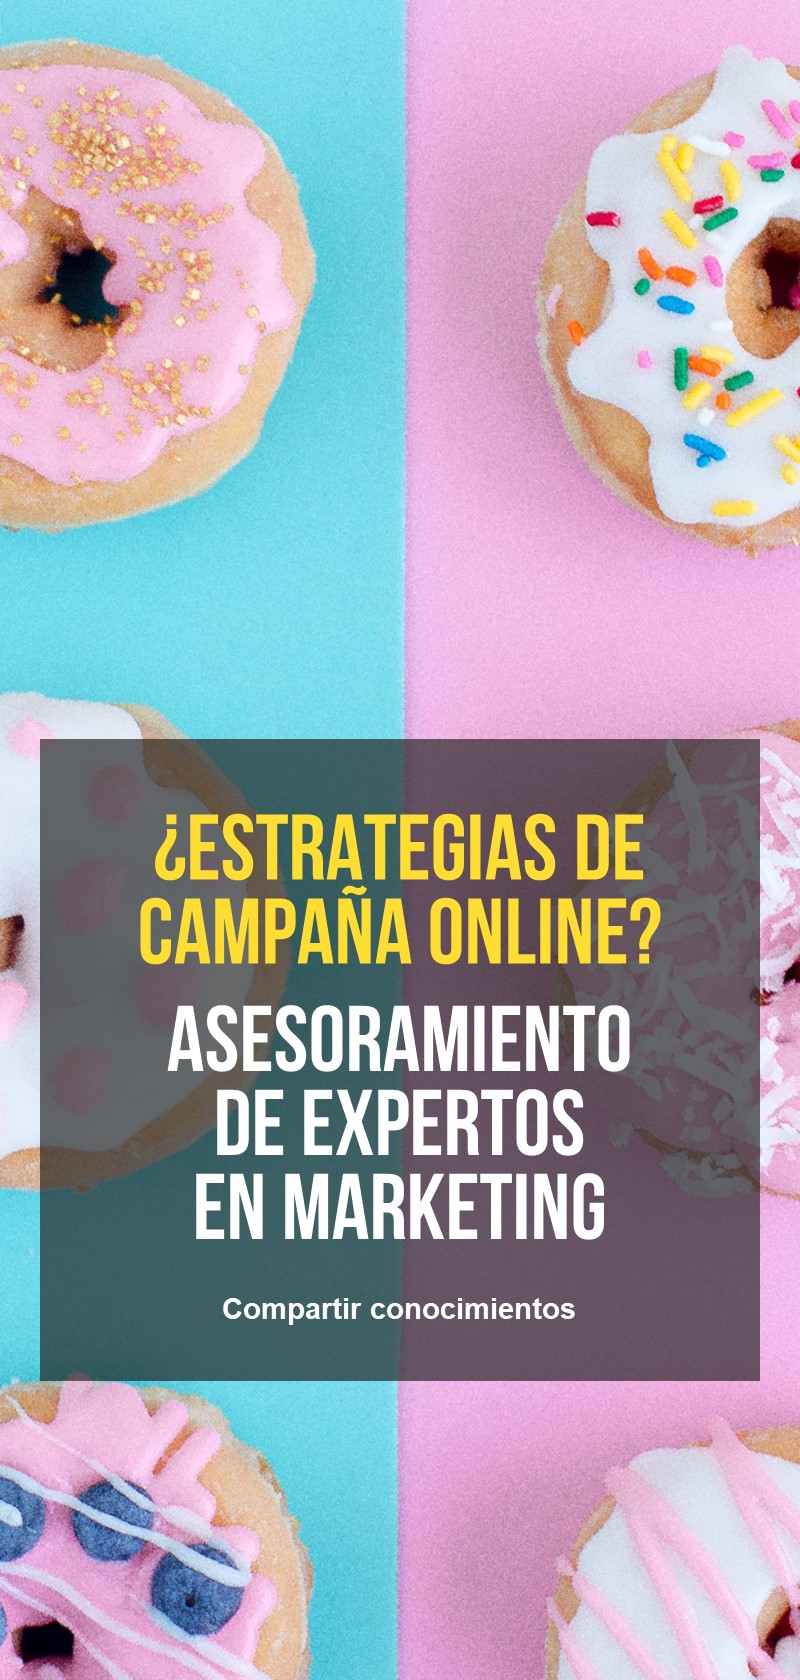 Consejos en marketing de influenciadores